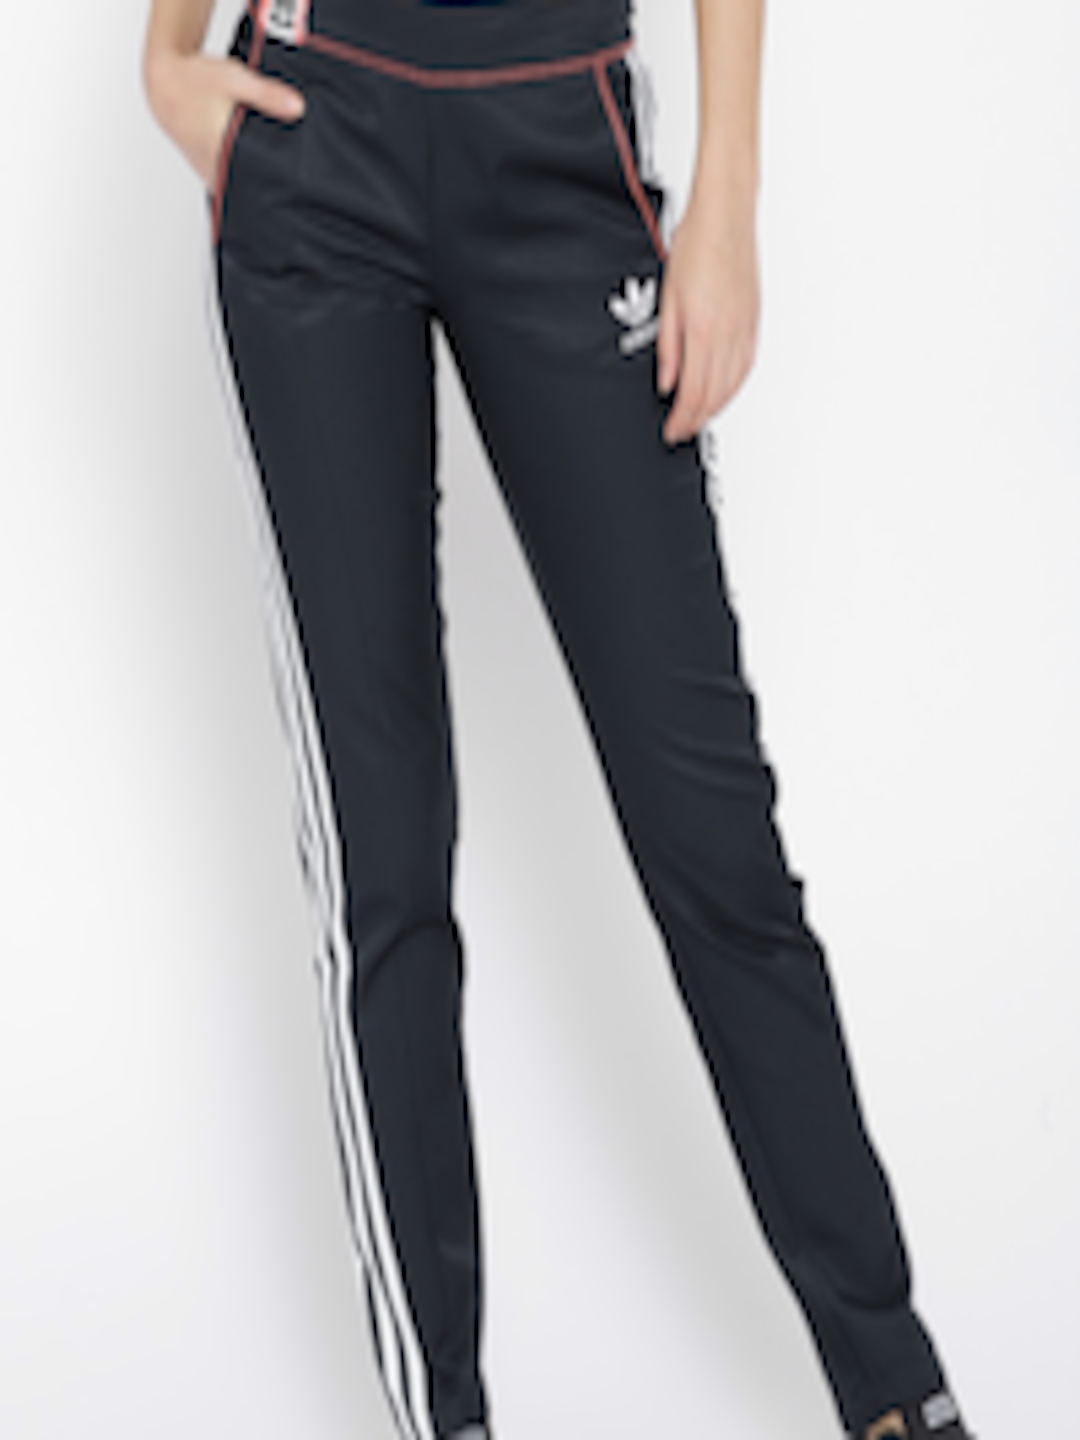 Buy ADIDAS Women Navy Blue Solid Active Icons Track Pants Apparel for Women